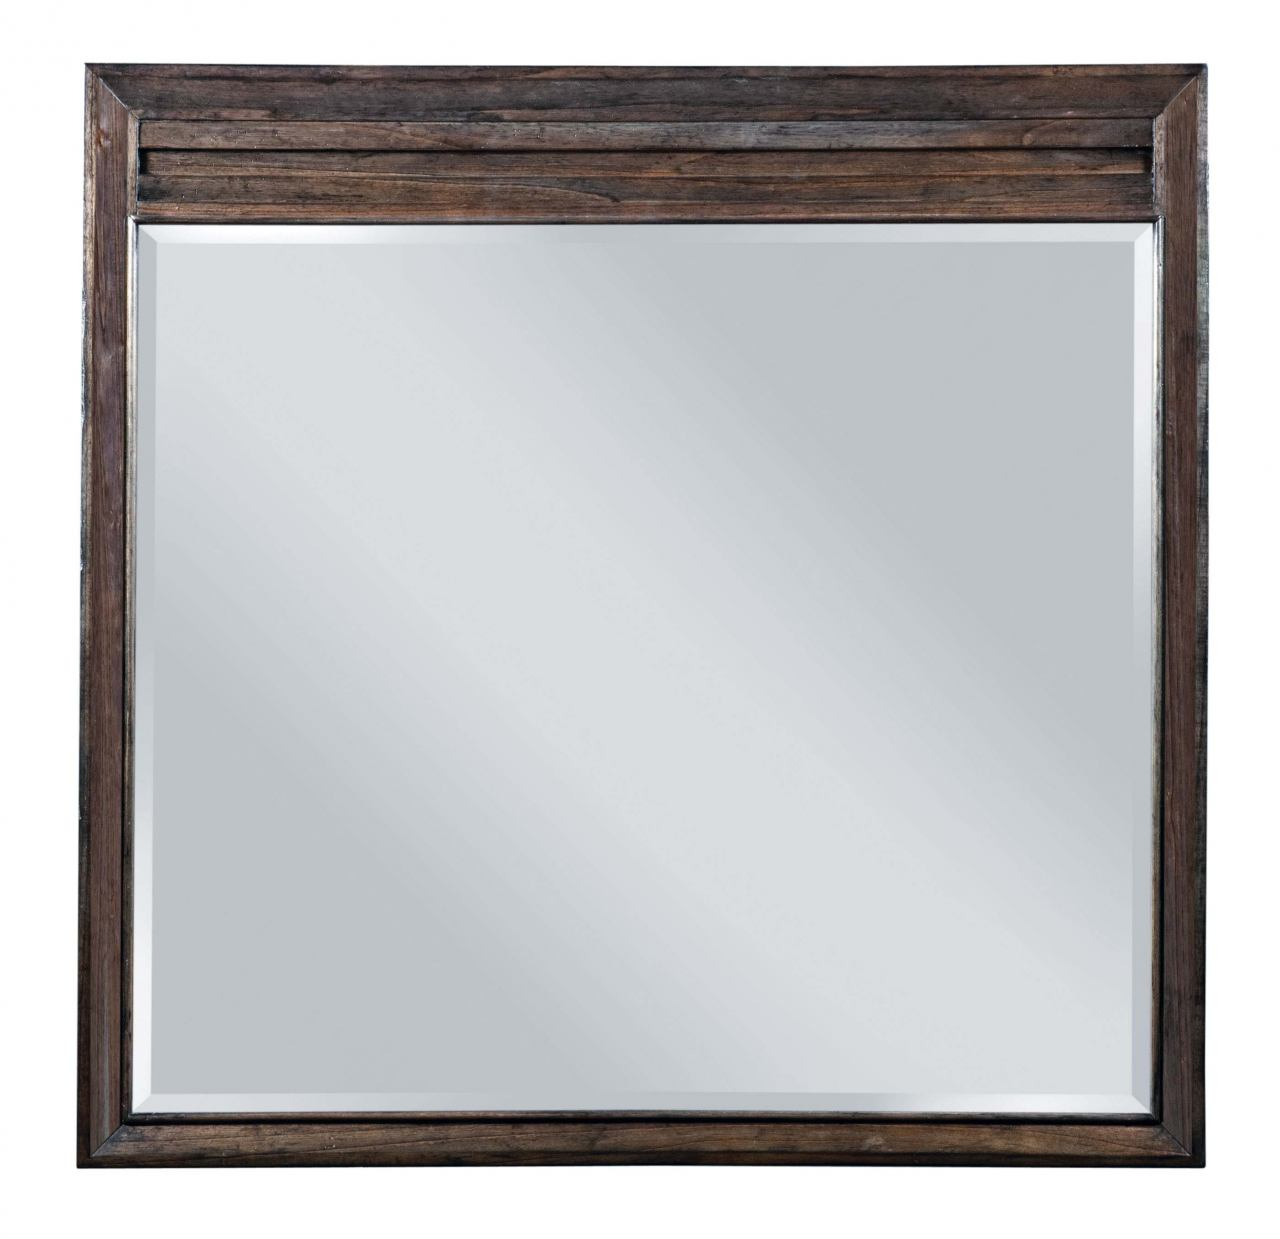 Kincaid Montreat Landscape Mirror in Graphite 84-114 CODE:UNIV20 for 20% Off